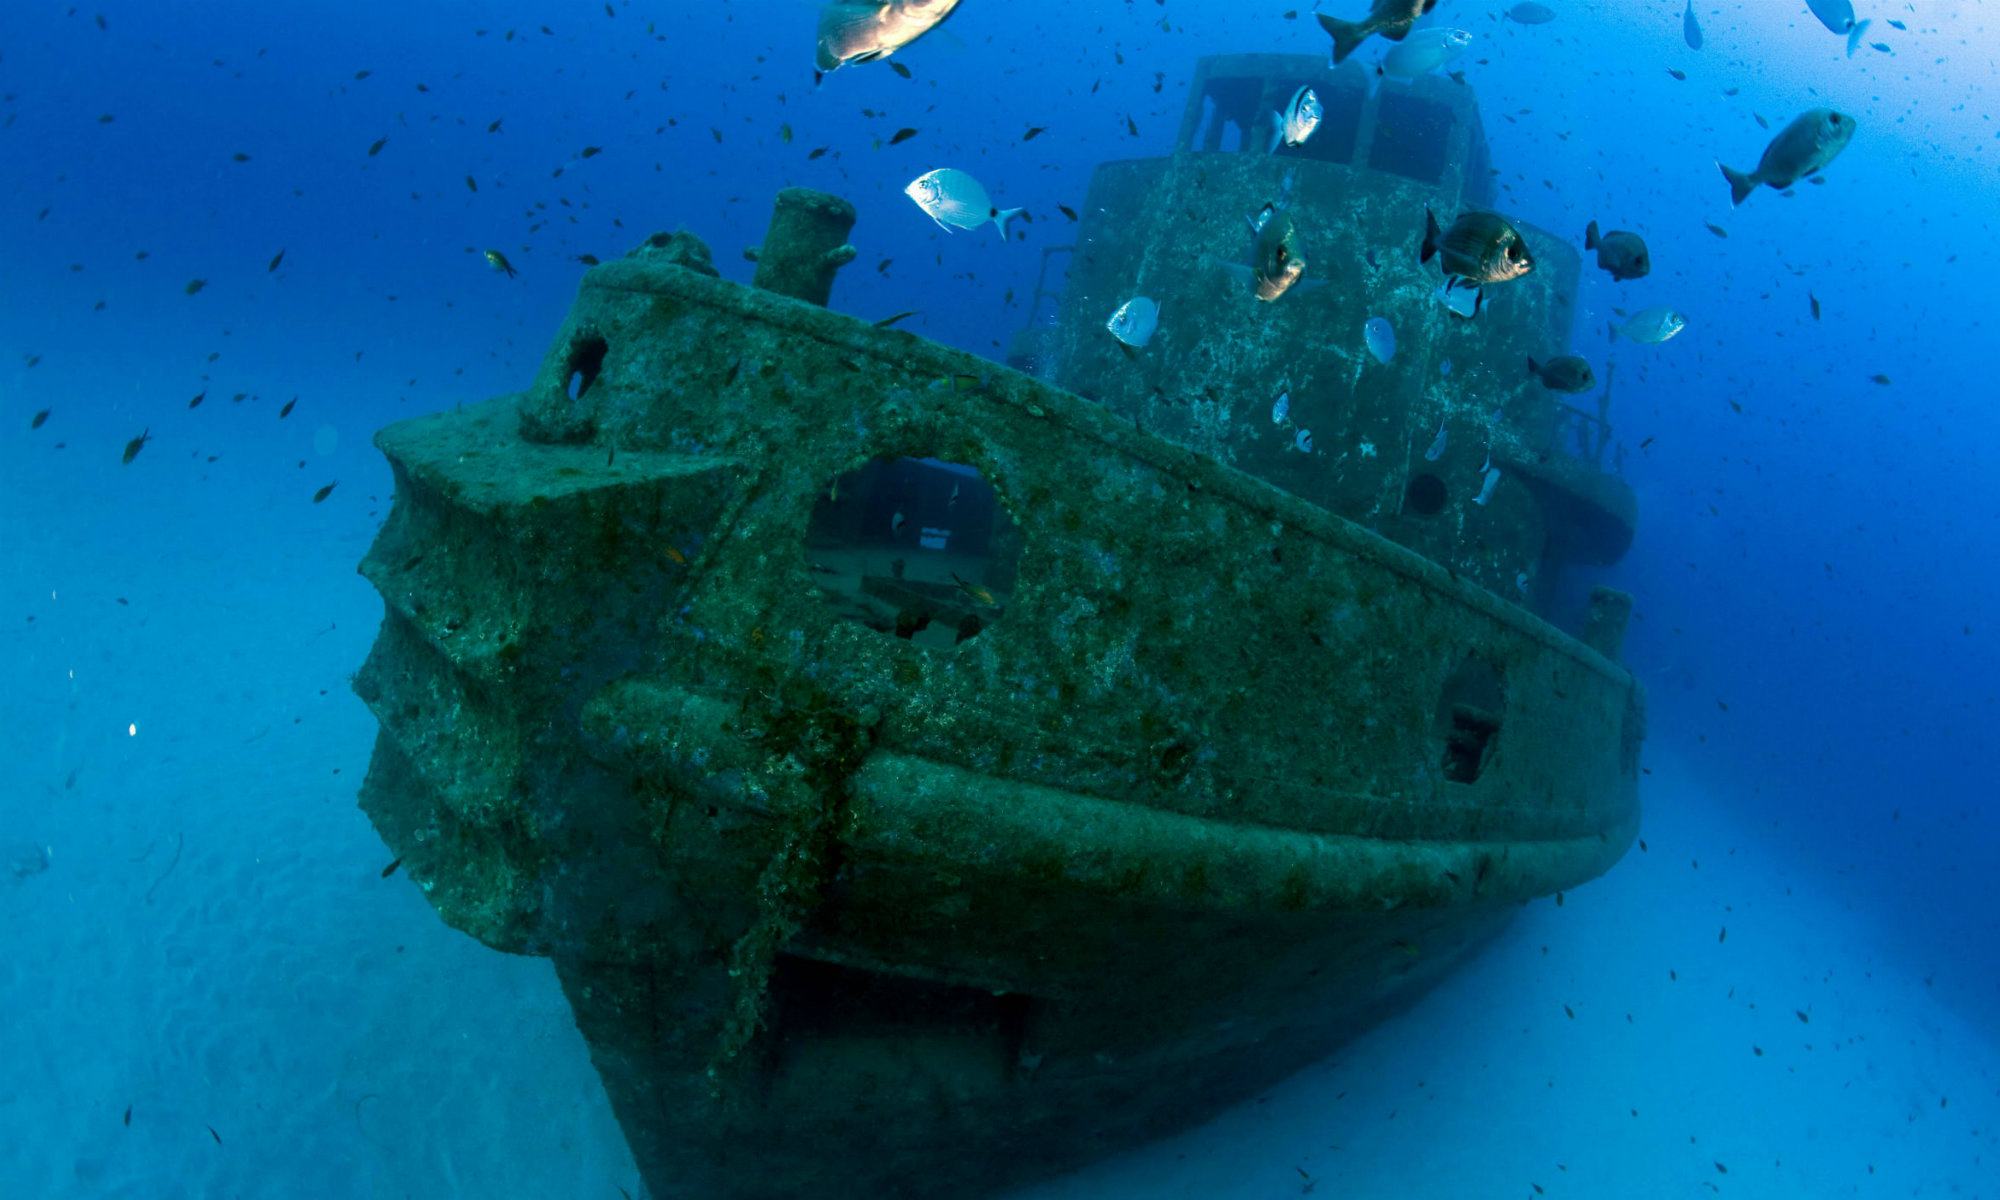 The Rozi Tugboat shipwreck is visible on the seabed.